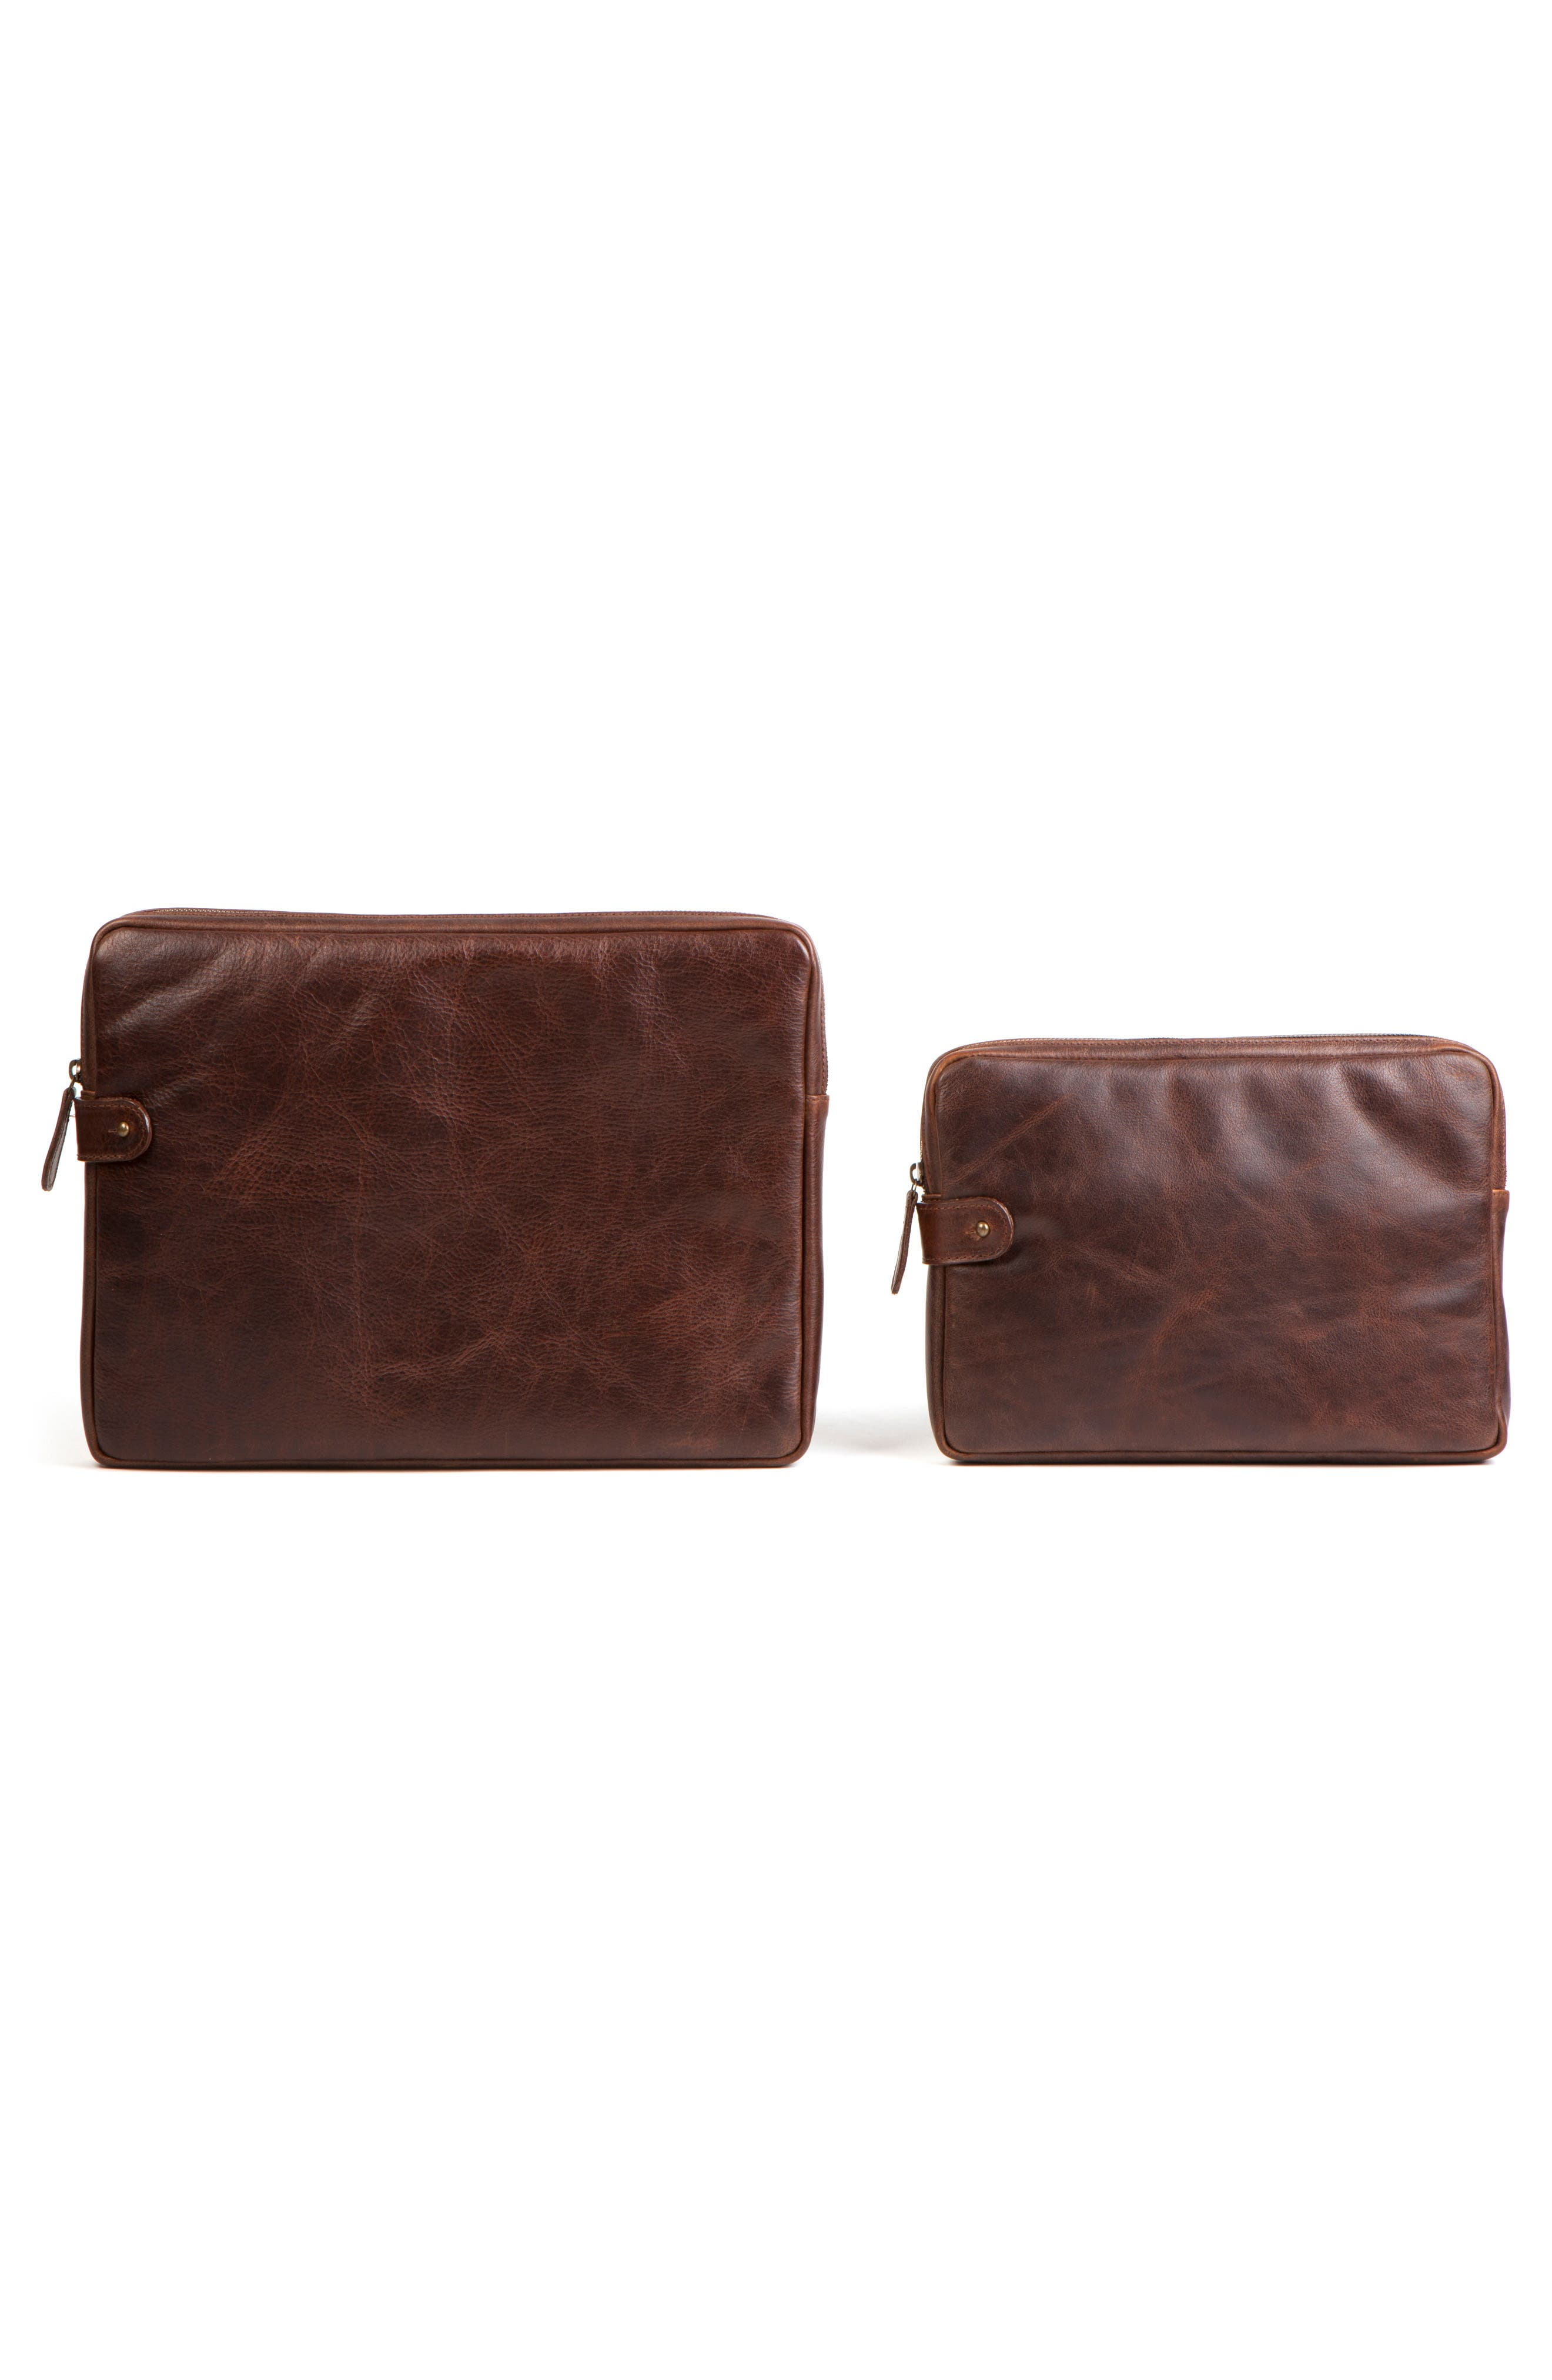 Leather Tablet Sleeve,                             Alternate thumbnail 4, color,                             206